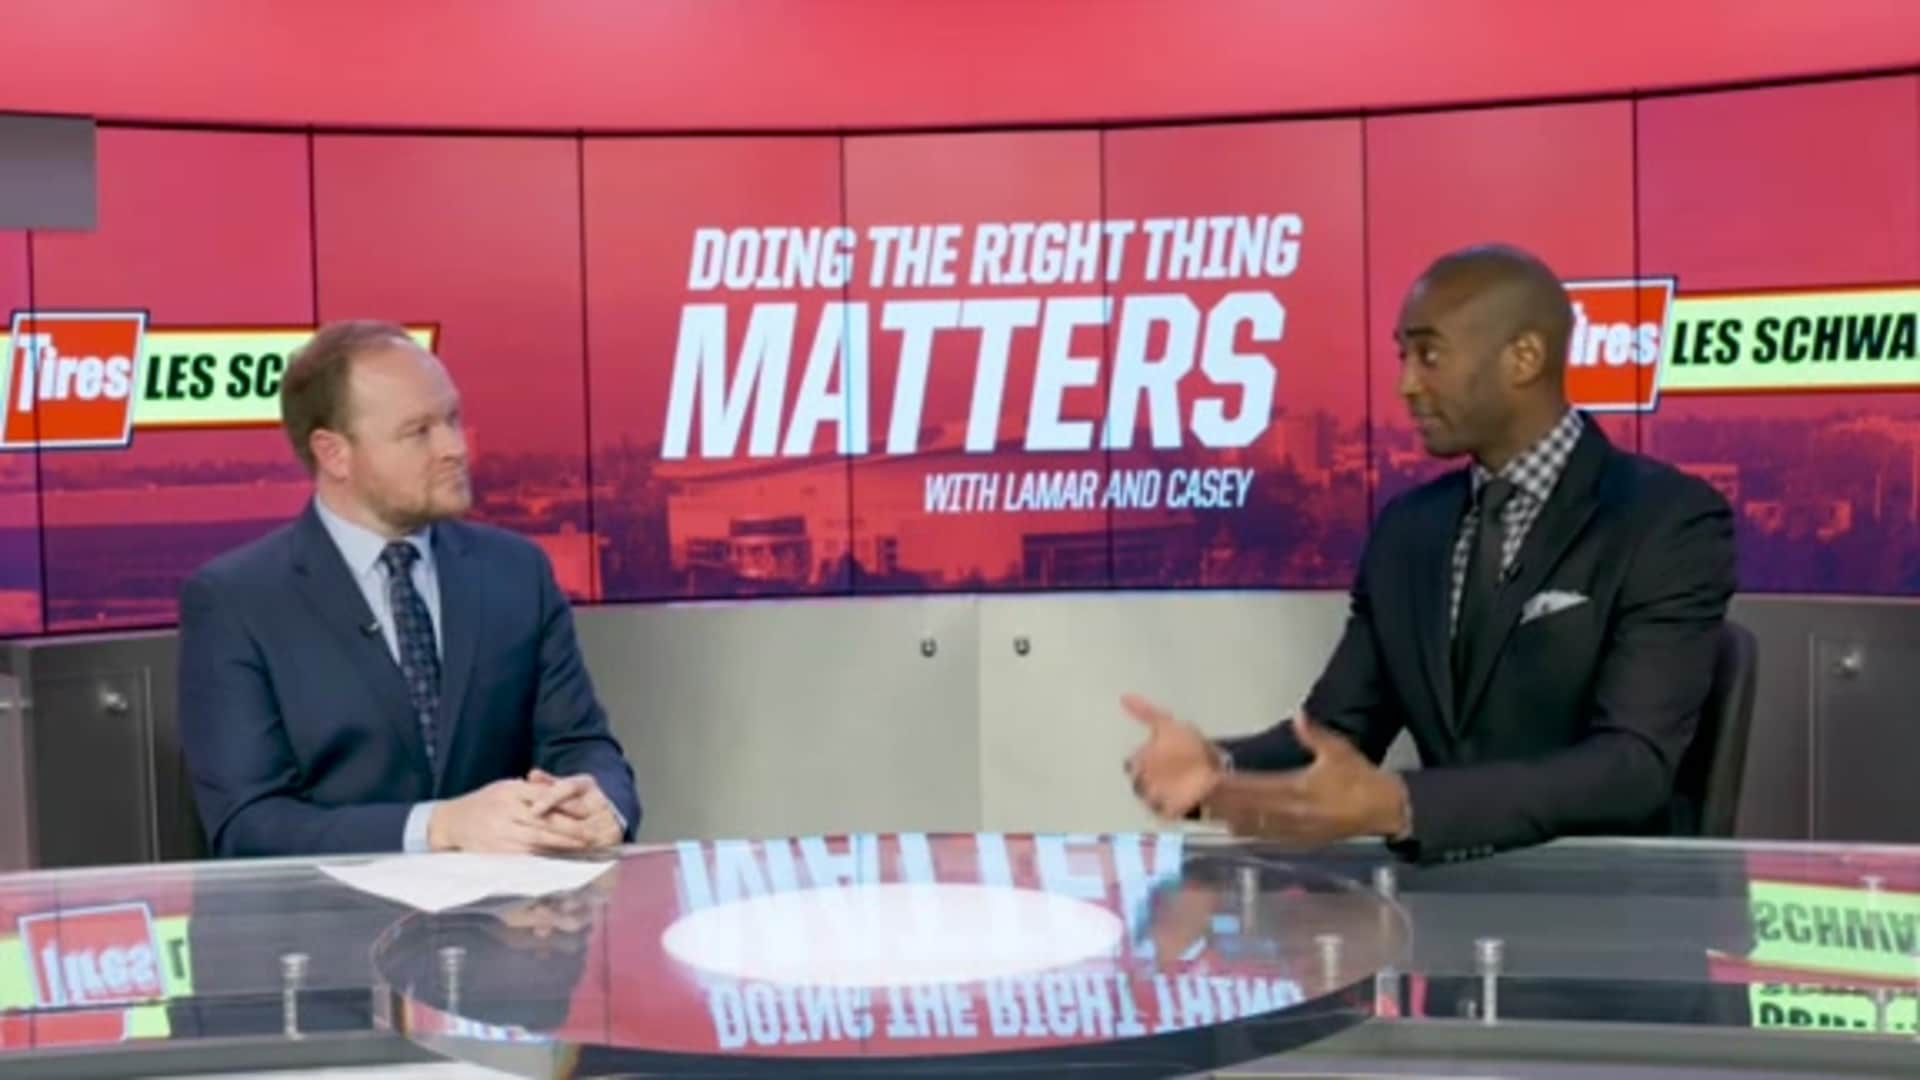 Carmelo Anthony Then vs. Now | Doing the Right Thing Matters presented by Les Schwab